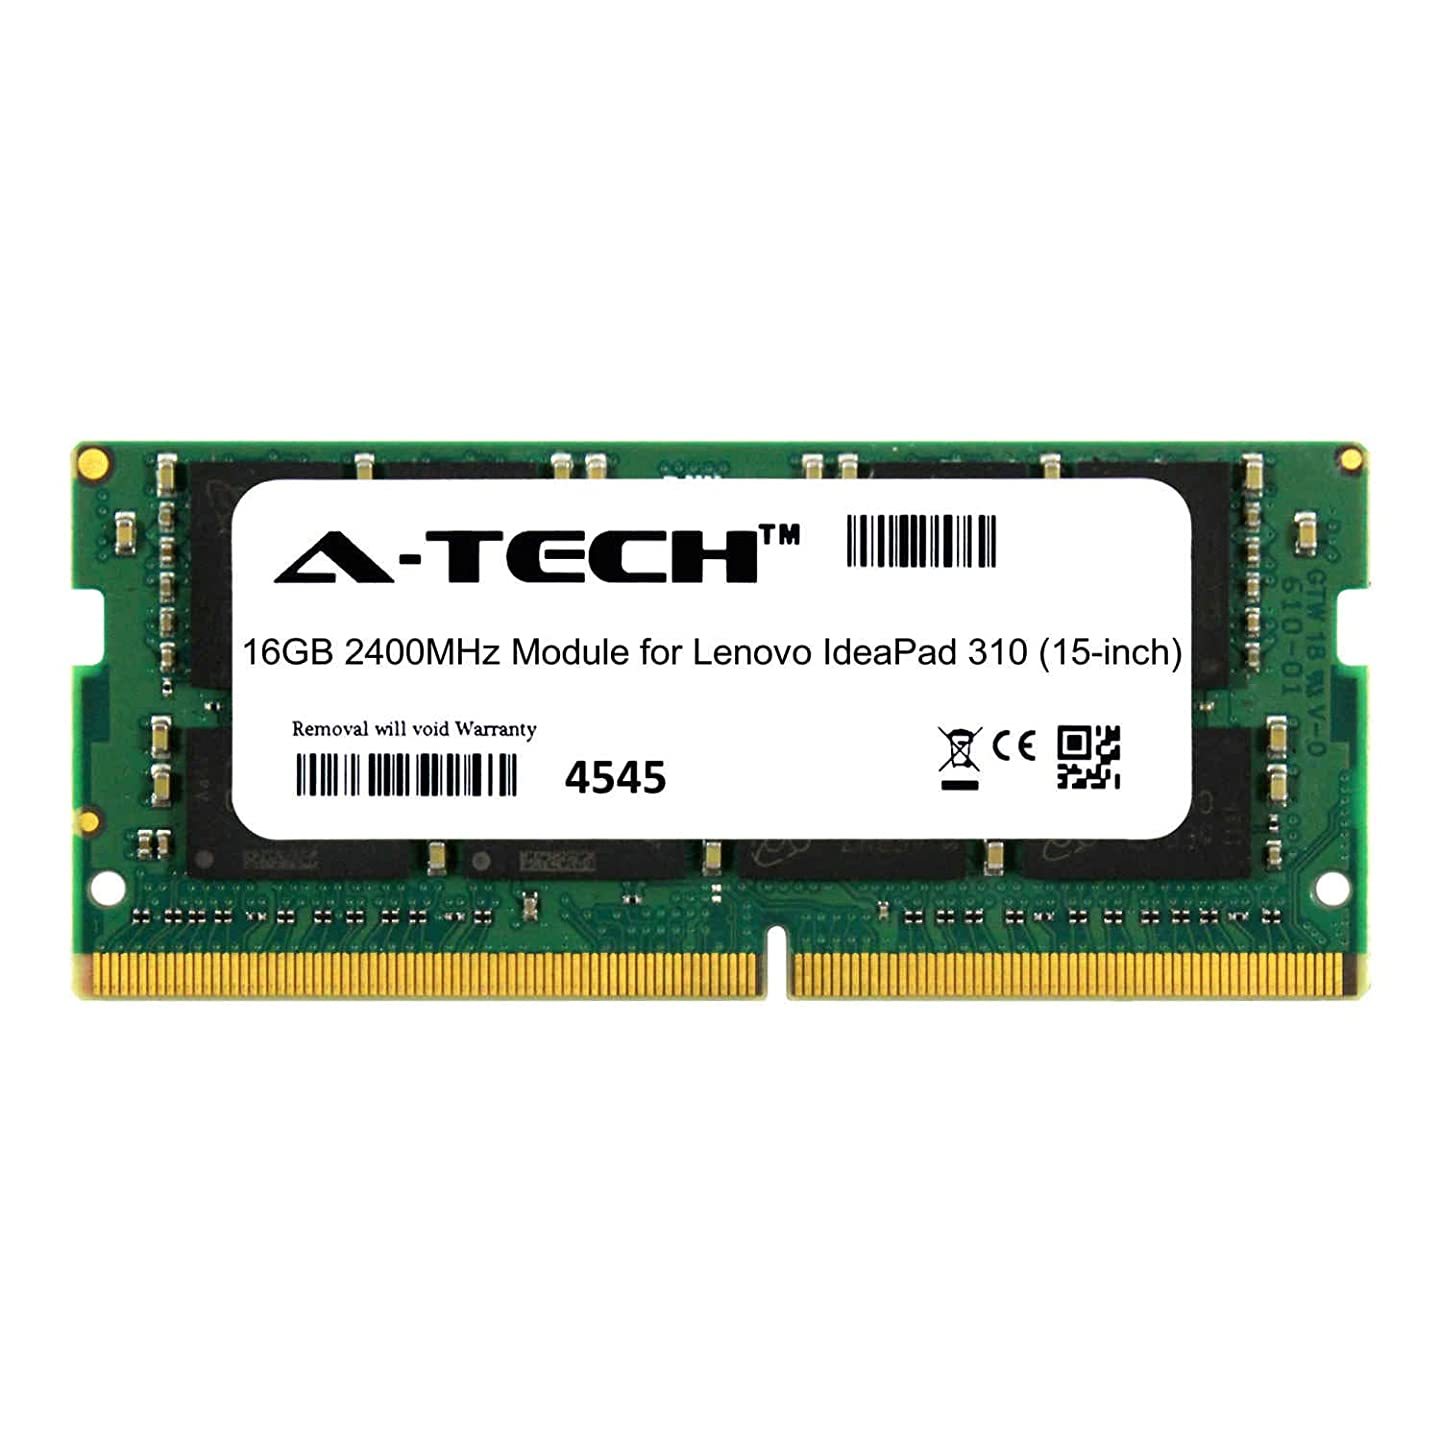 A-Tech 16GB Module for Lenovo IdeaPad 310 (15-inch) Laptop & Notebook Compatible DDR4 2400Mhz Memory Ram (ATMS277055A25831X1)